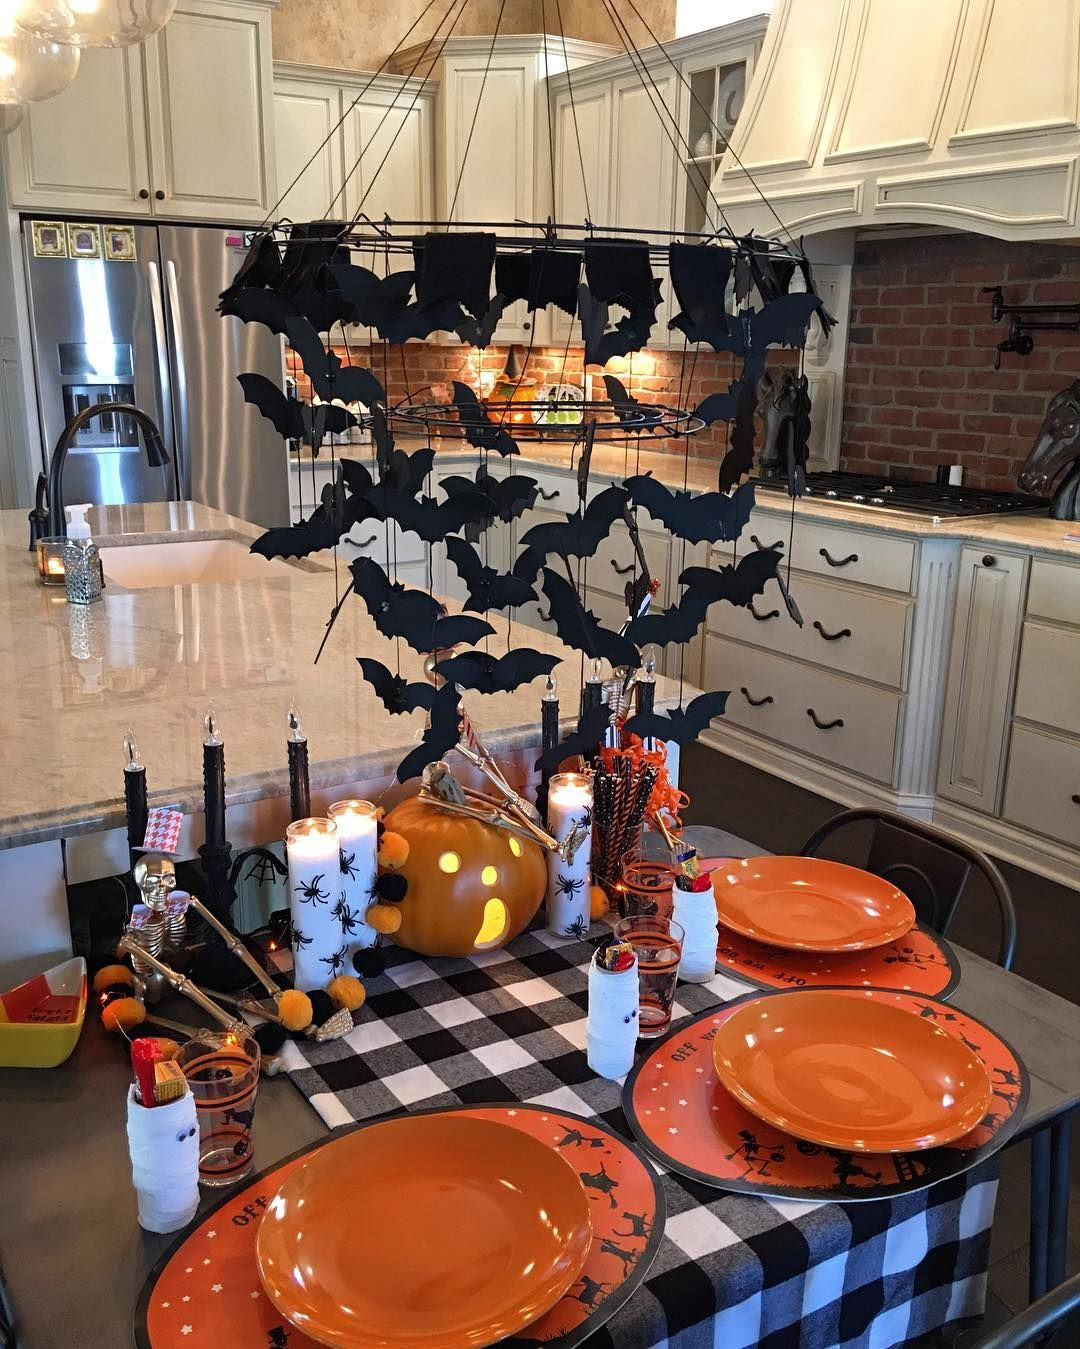 25 Creepy Cool Halloween Table Settings